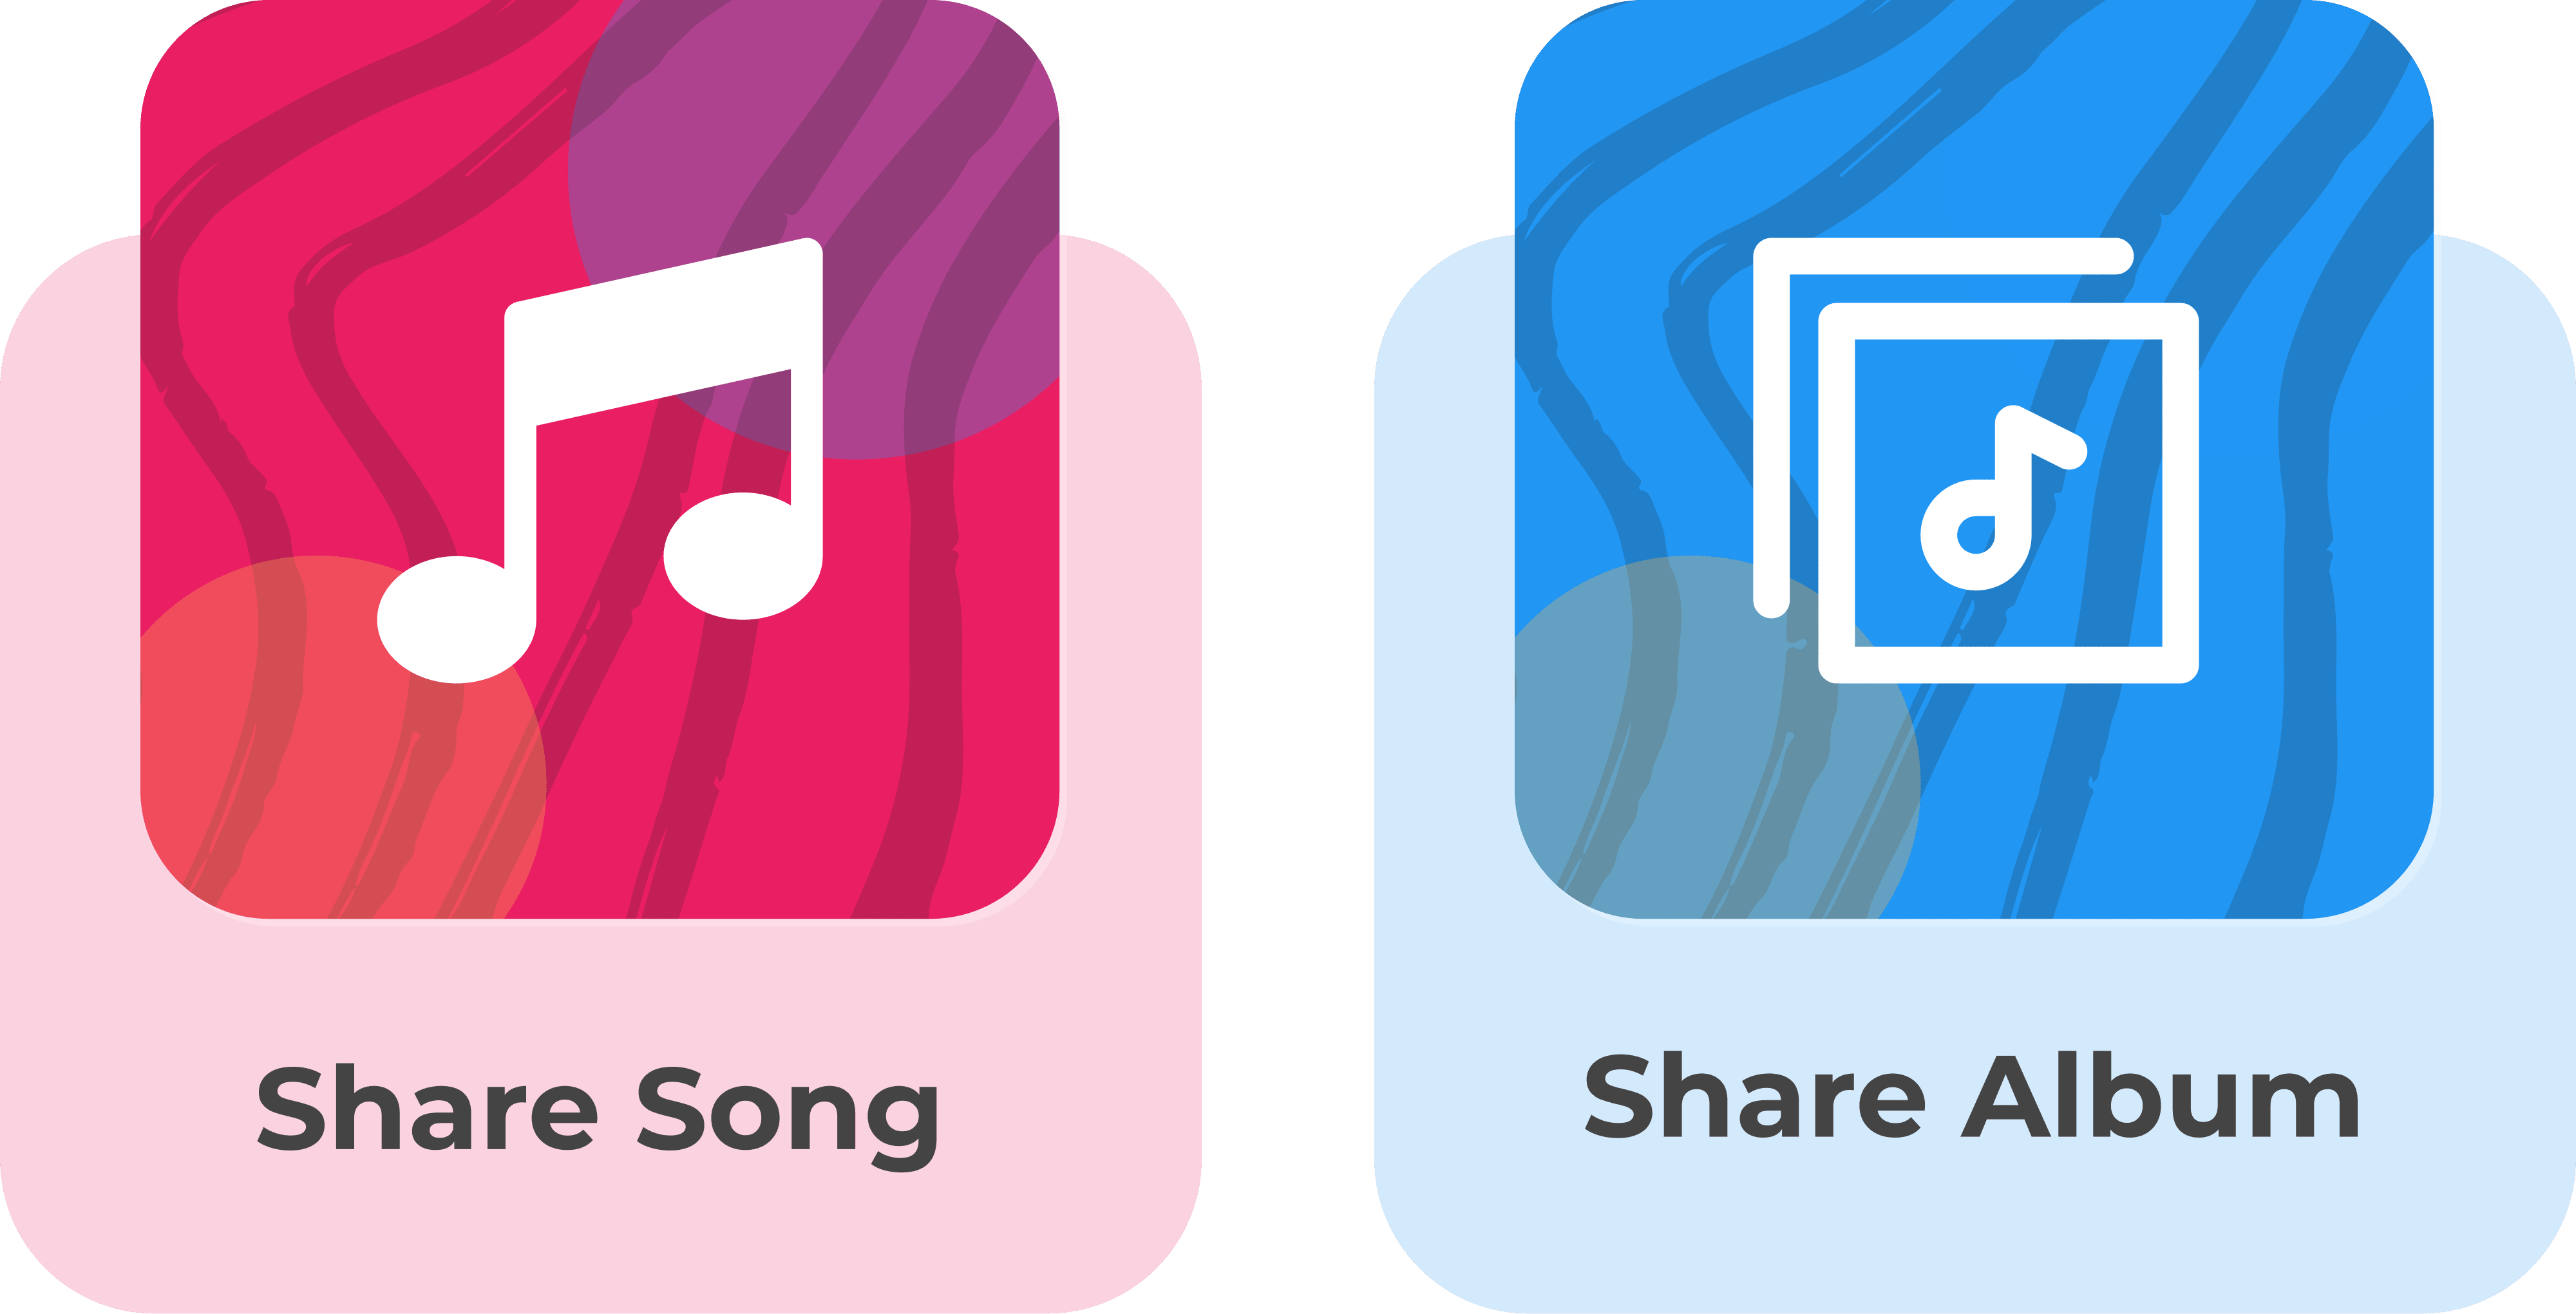 Share the music